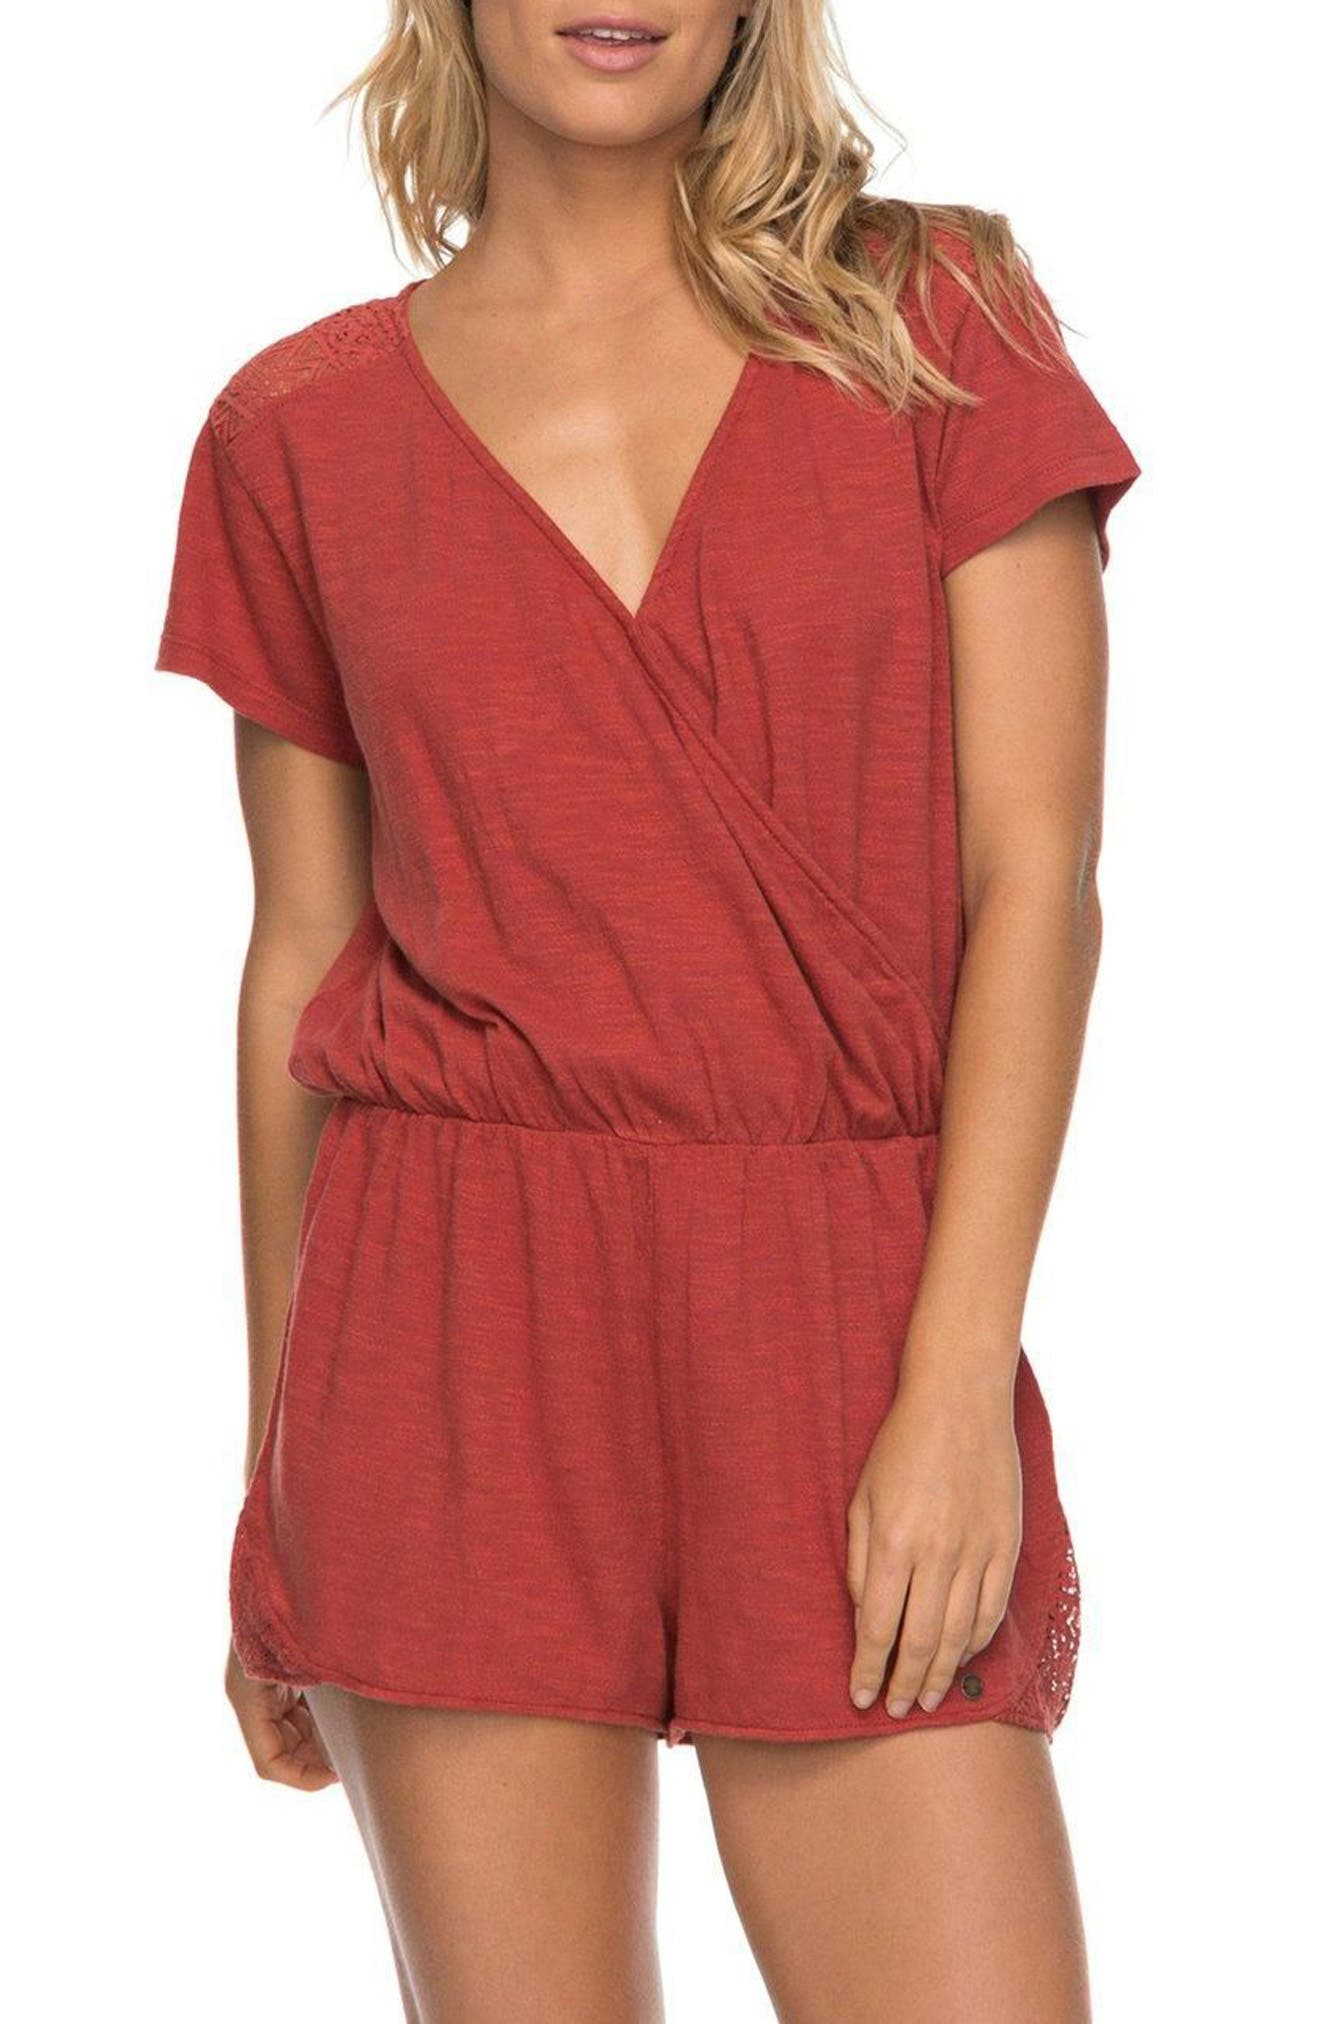 roxy salty evening romper for sale